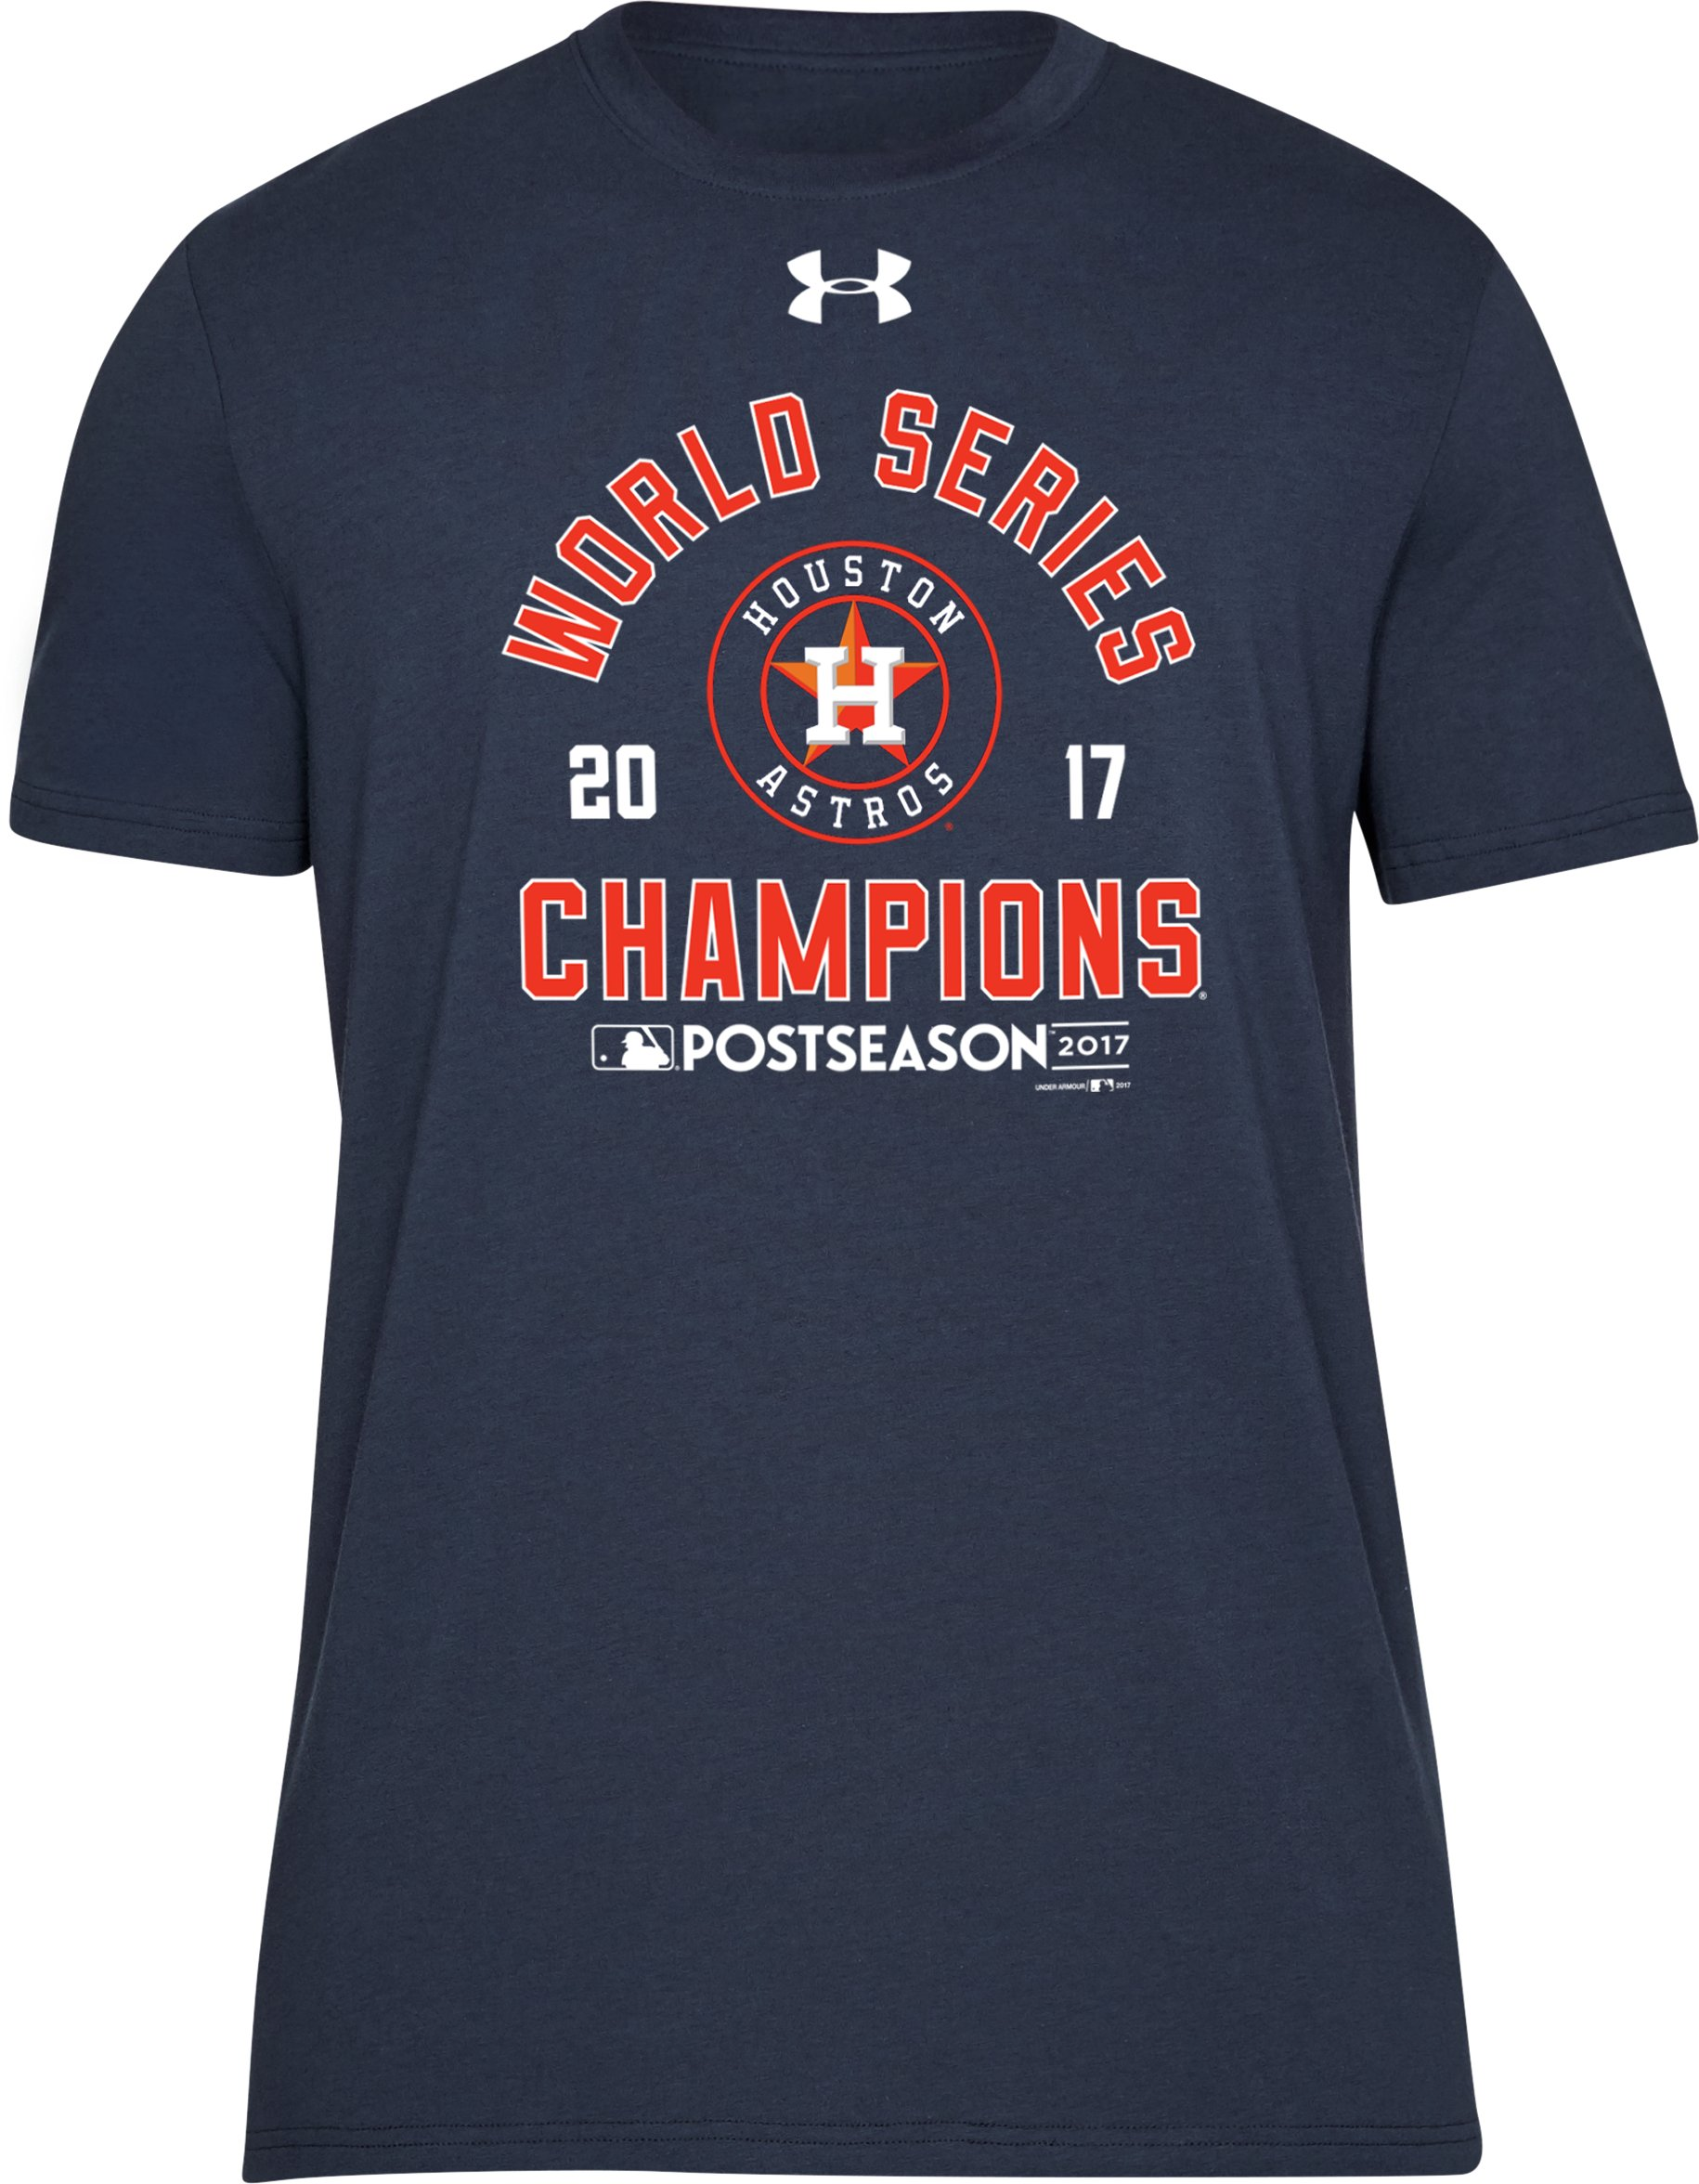 Men's Houston Astros World Series Champs T-Shirt, Midnight Navy, undefined